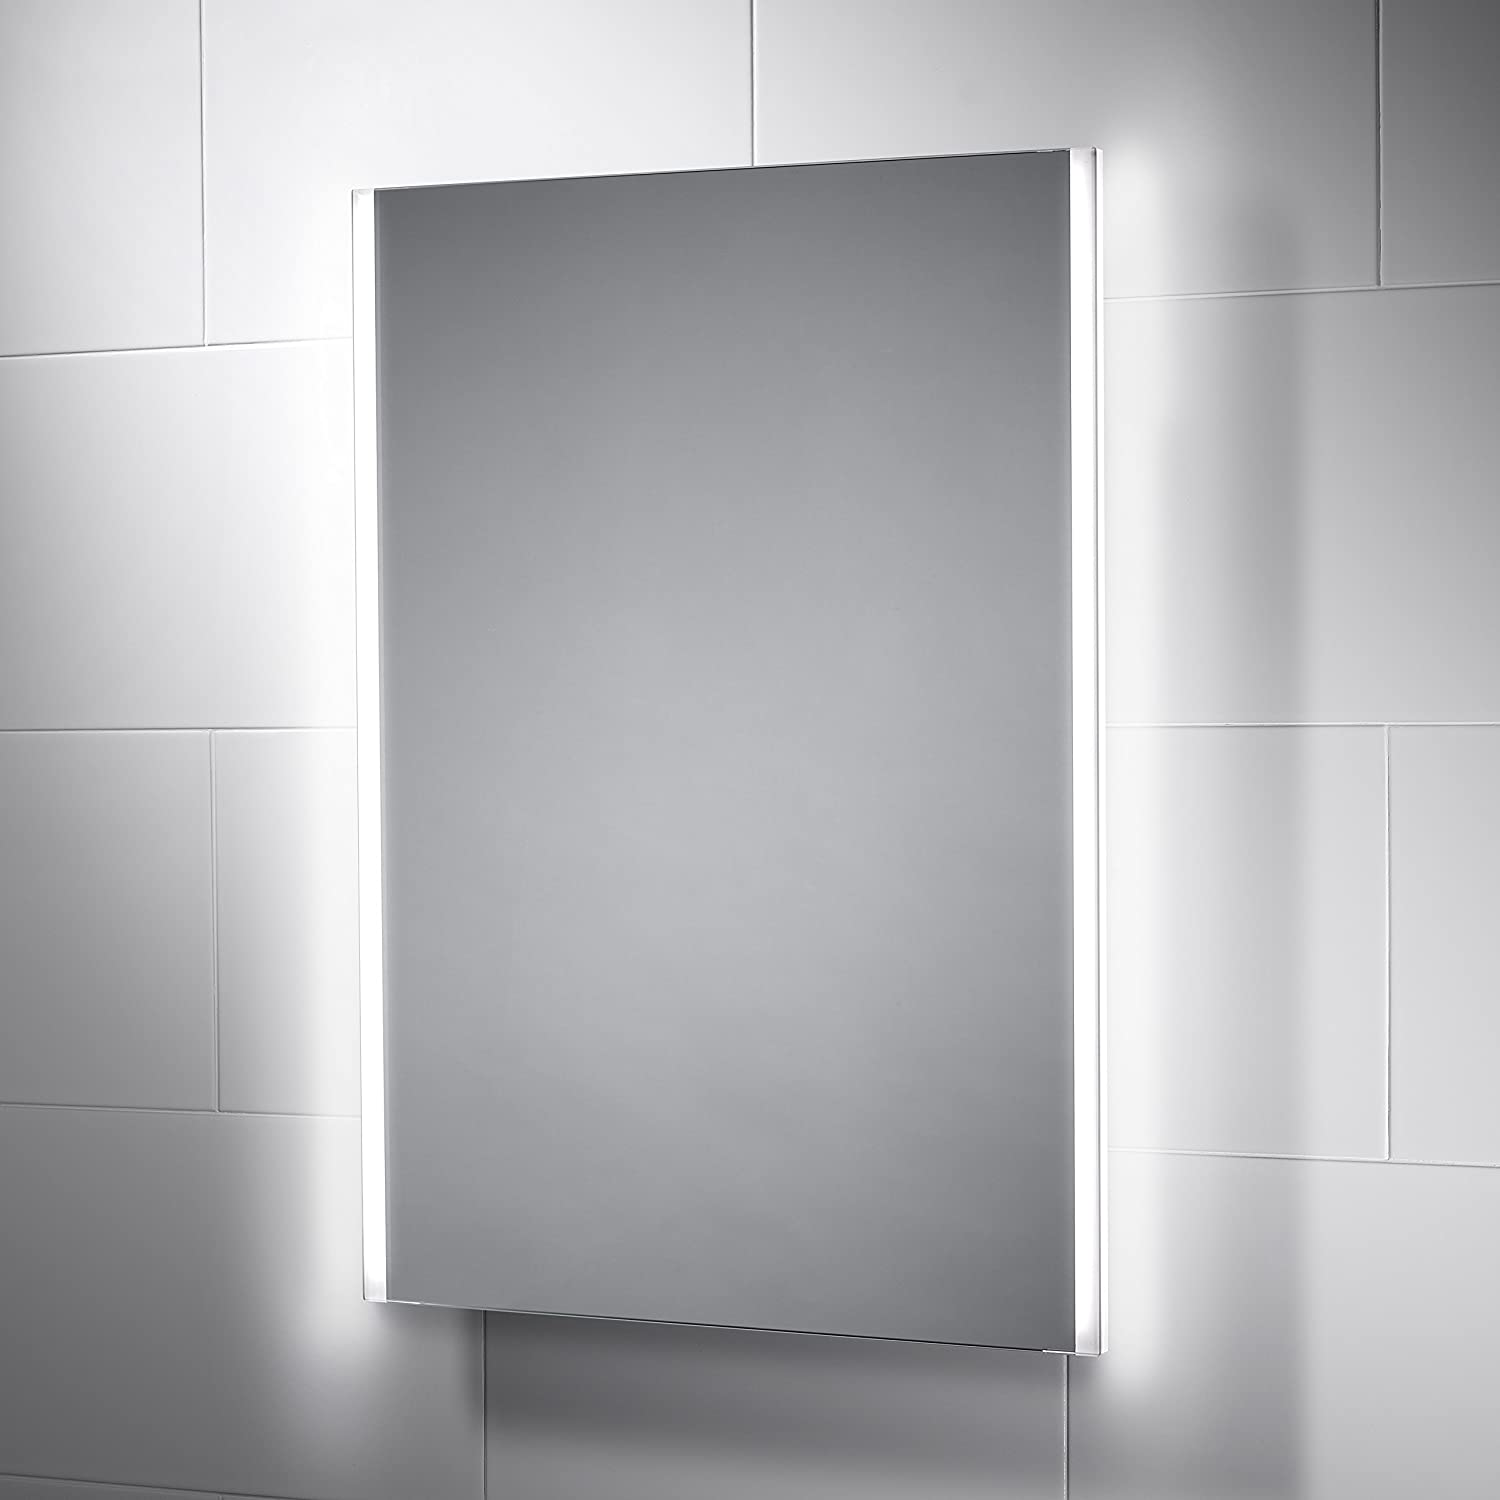 Adara LED Bathroom Mirror 500mm x 700mm, with built-in Bluetooth ...